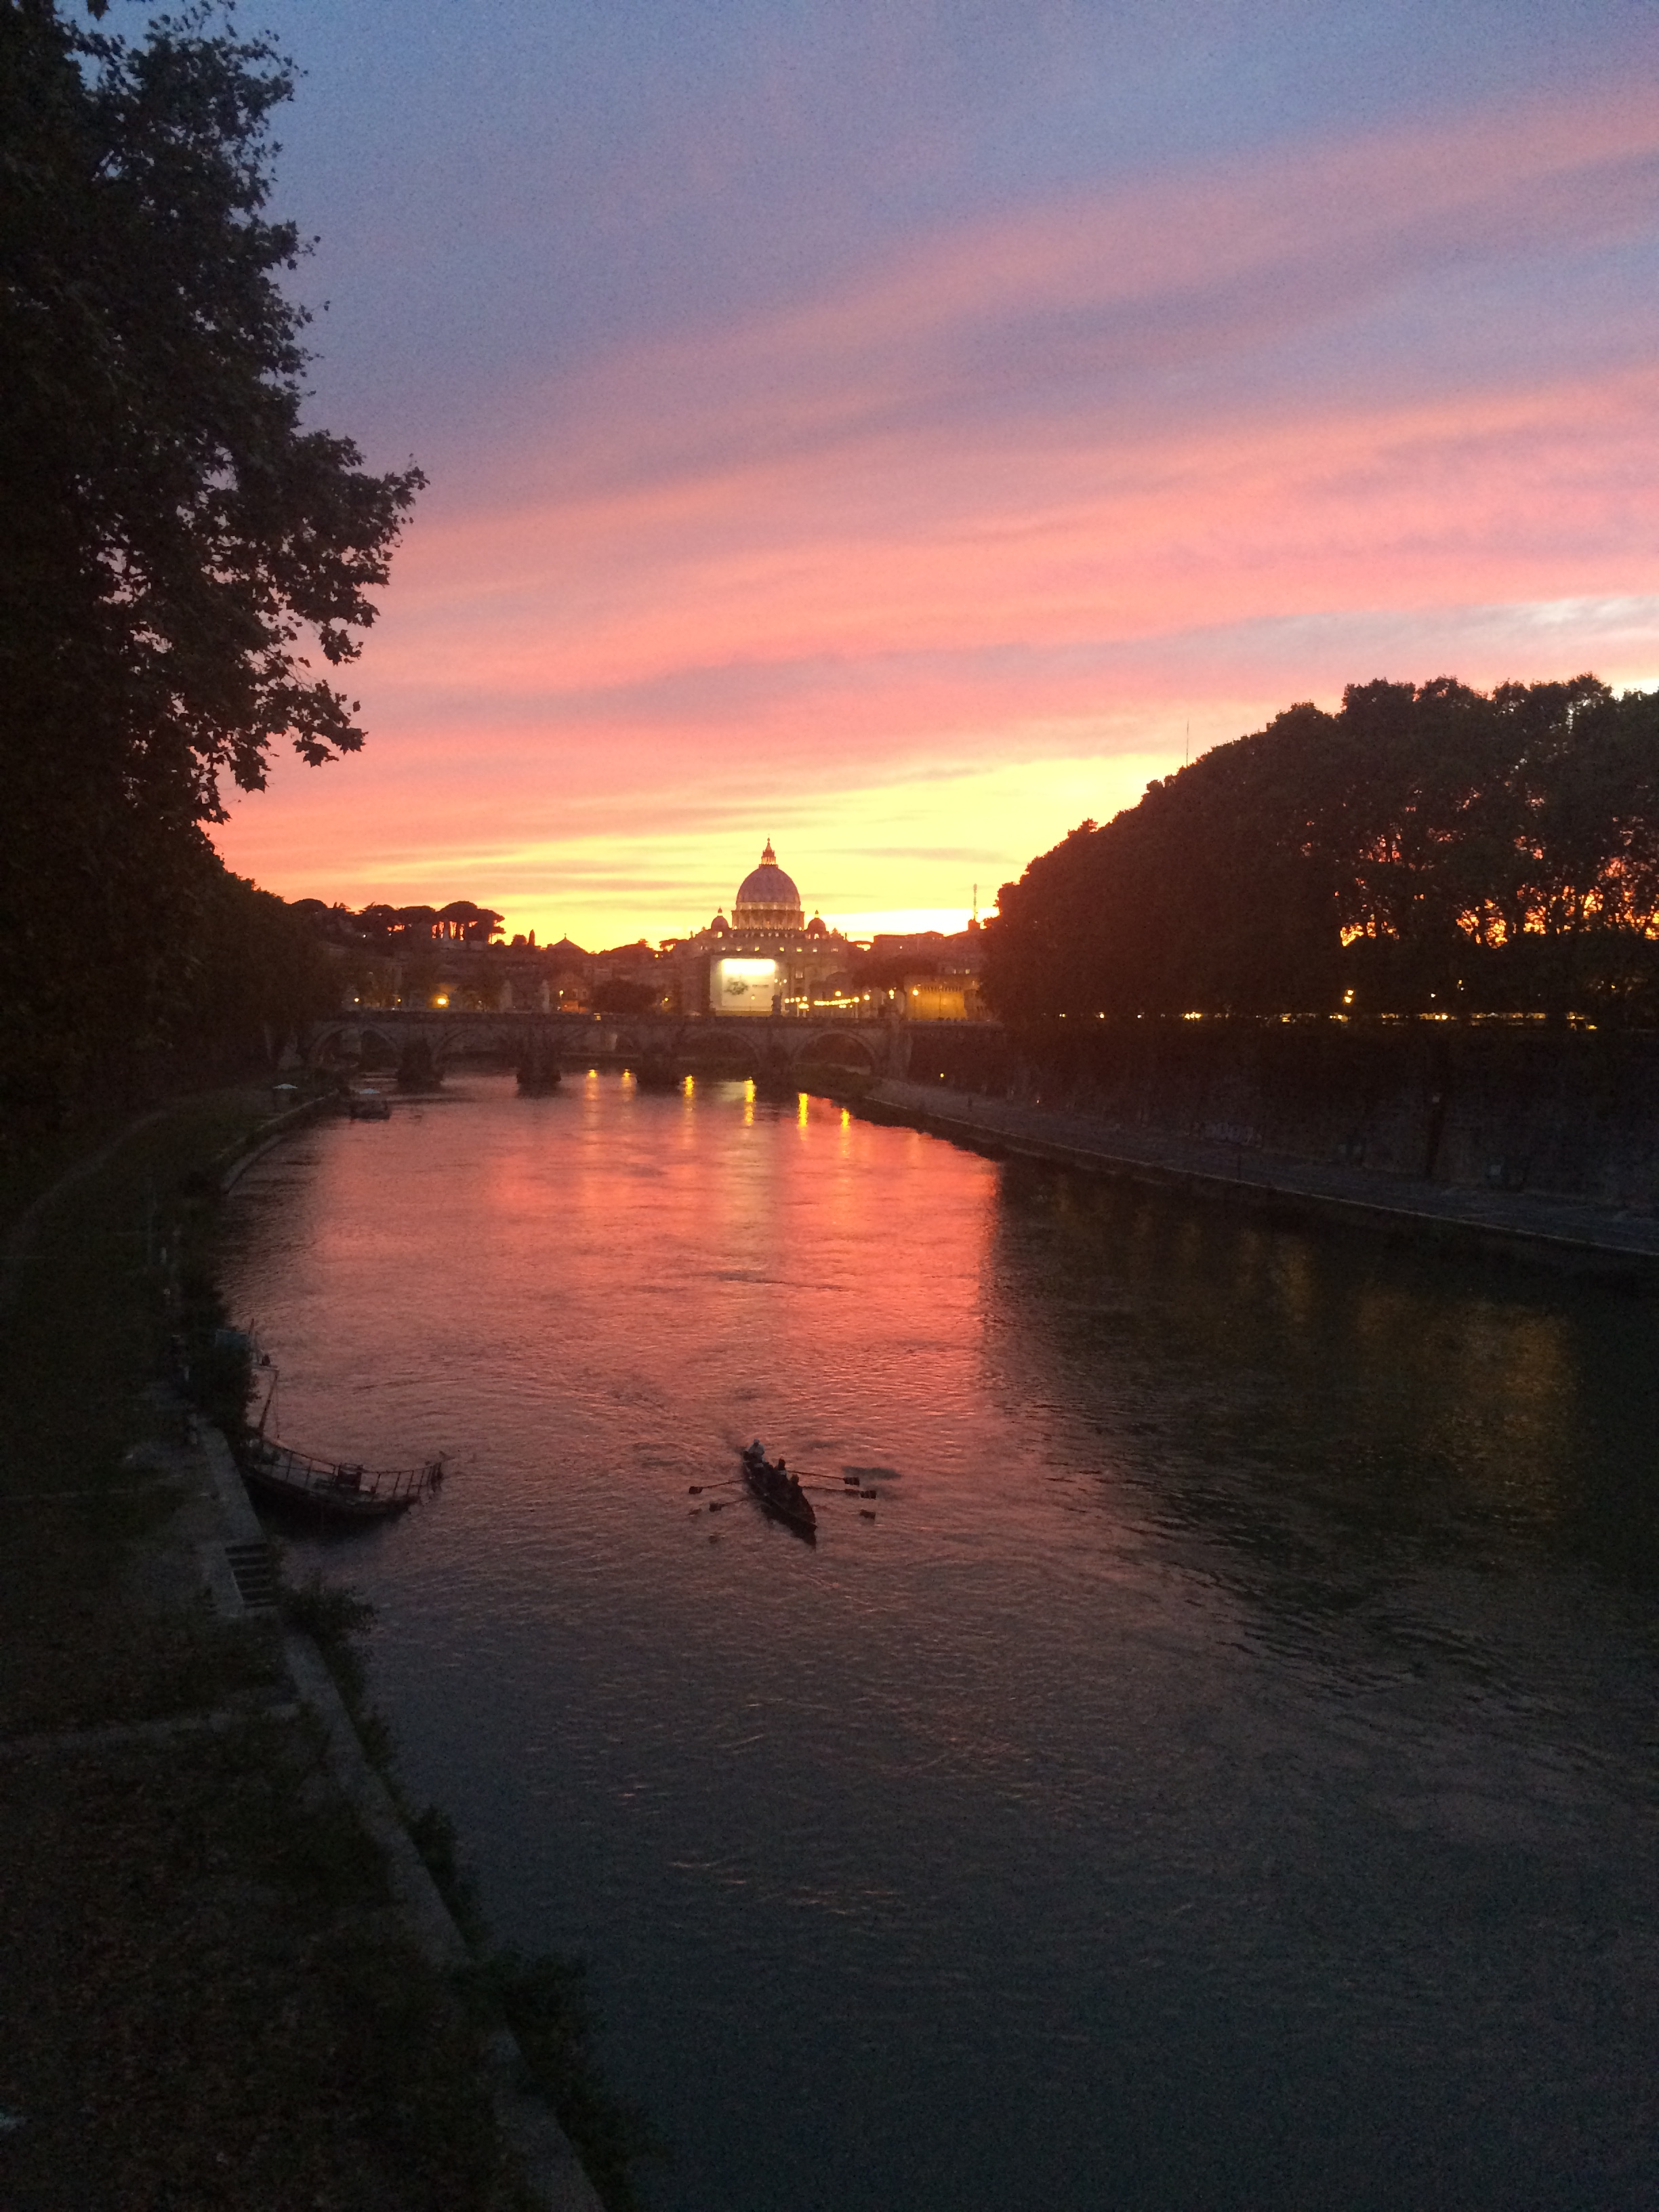 Sunset over St. Peter's Basilica